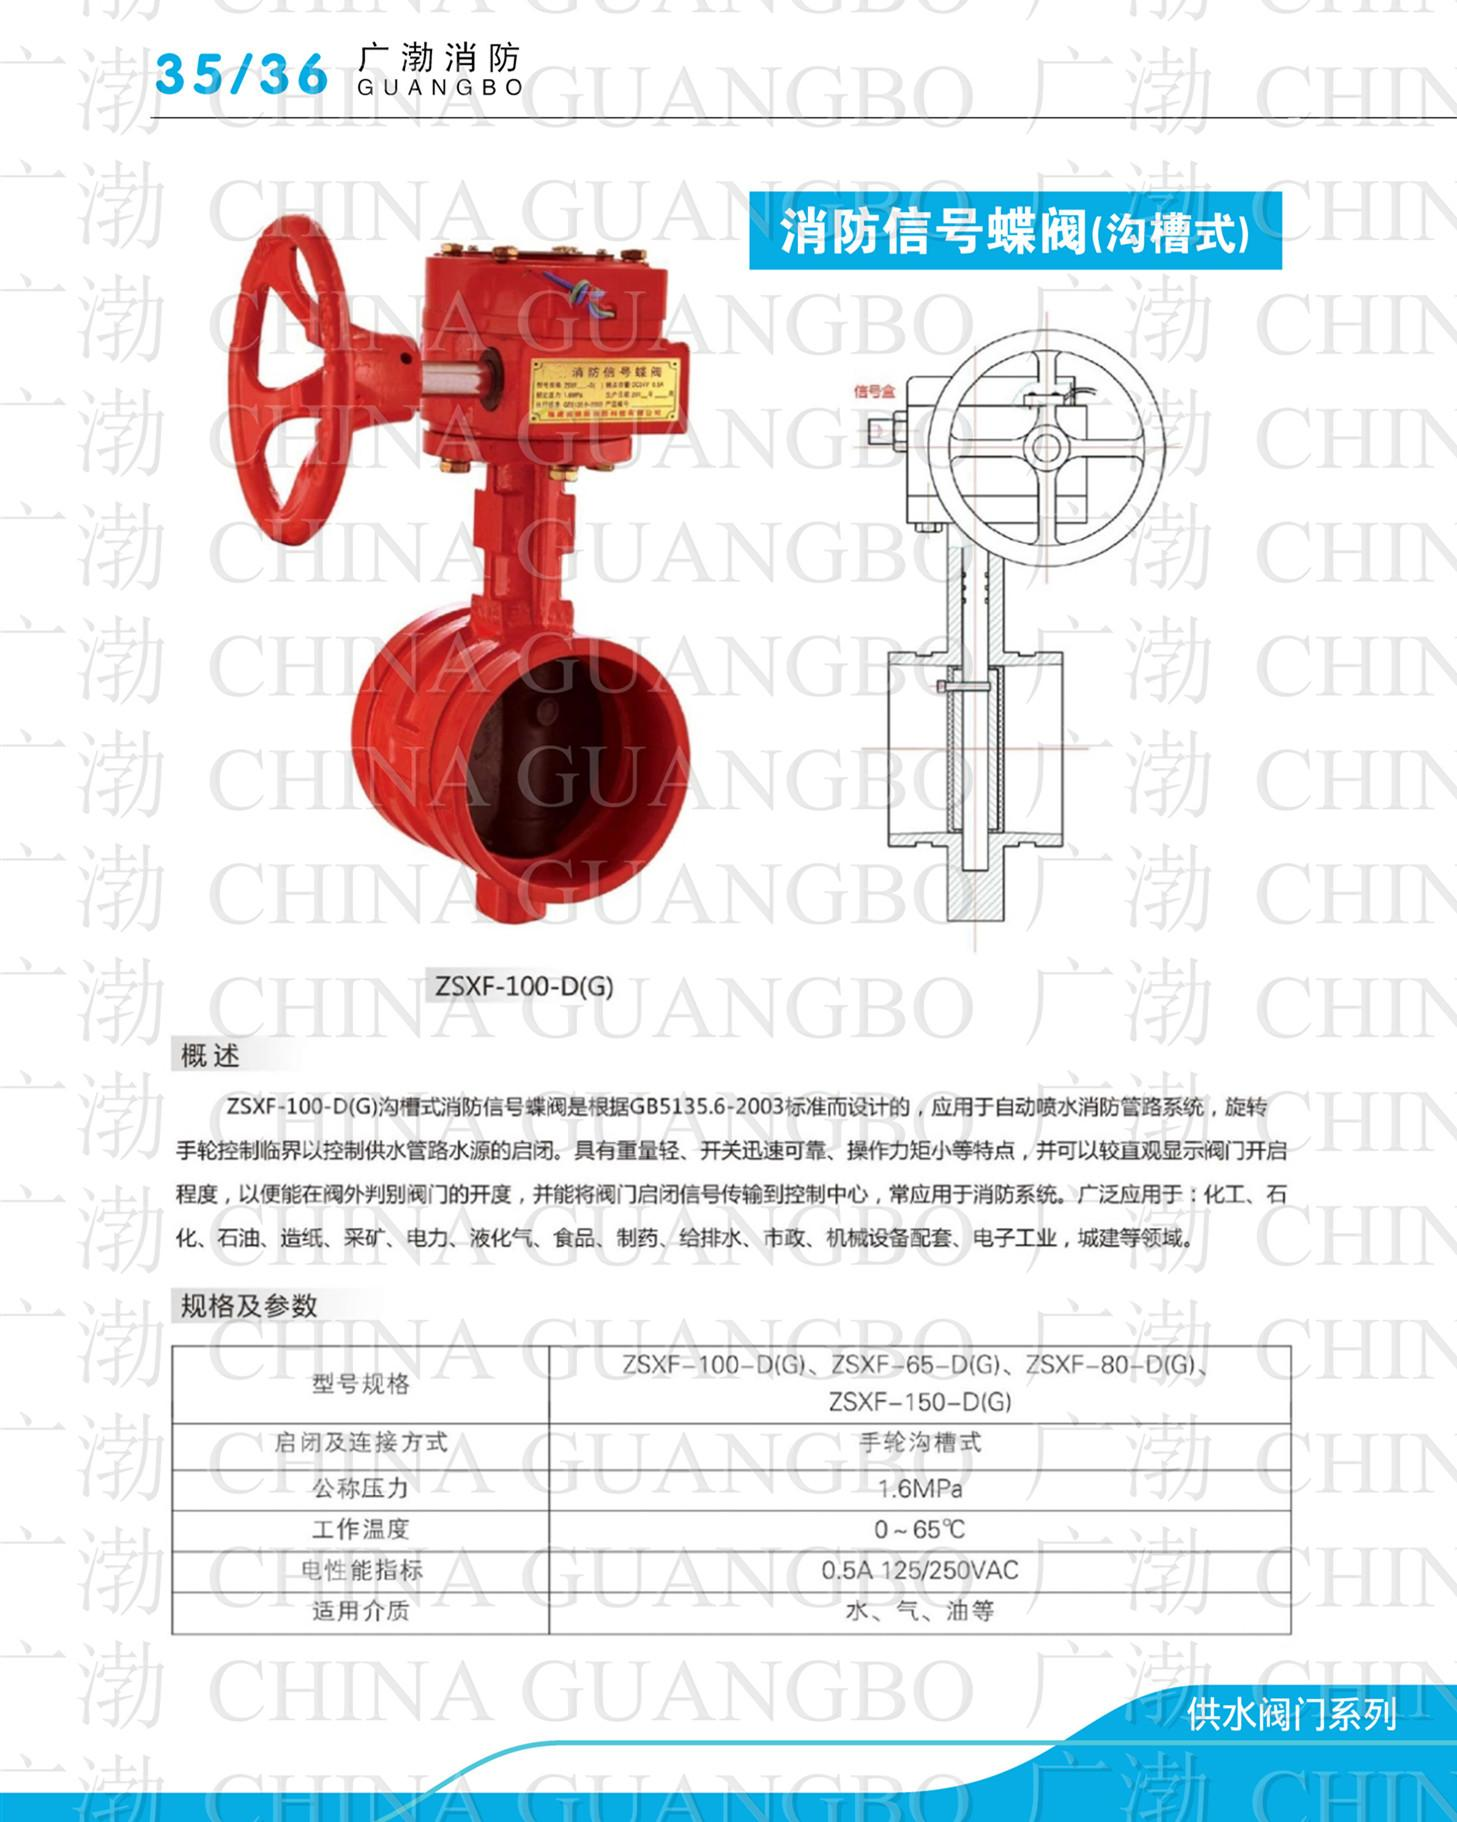 Fire Butterfly Valve Wafer Type Groove Type China Fujian Gunagbo Brand 3